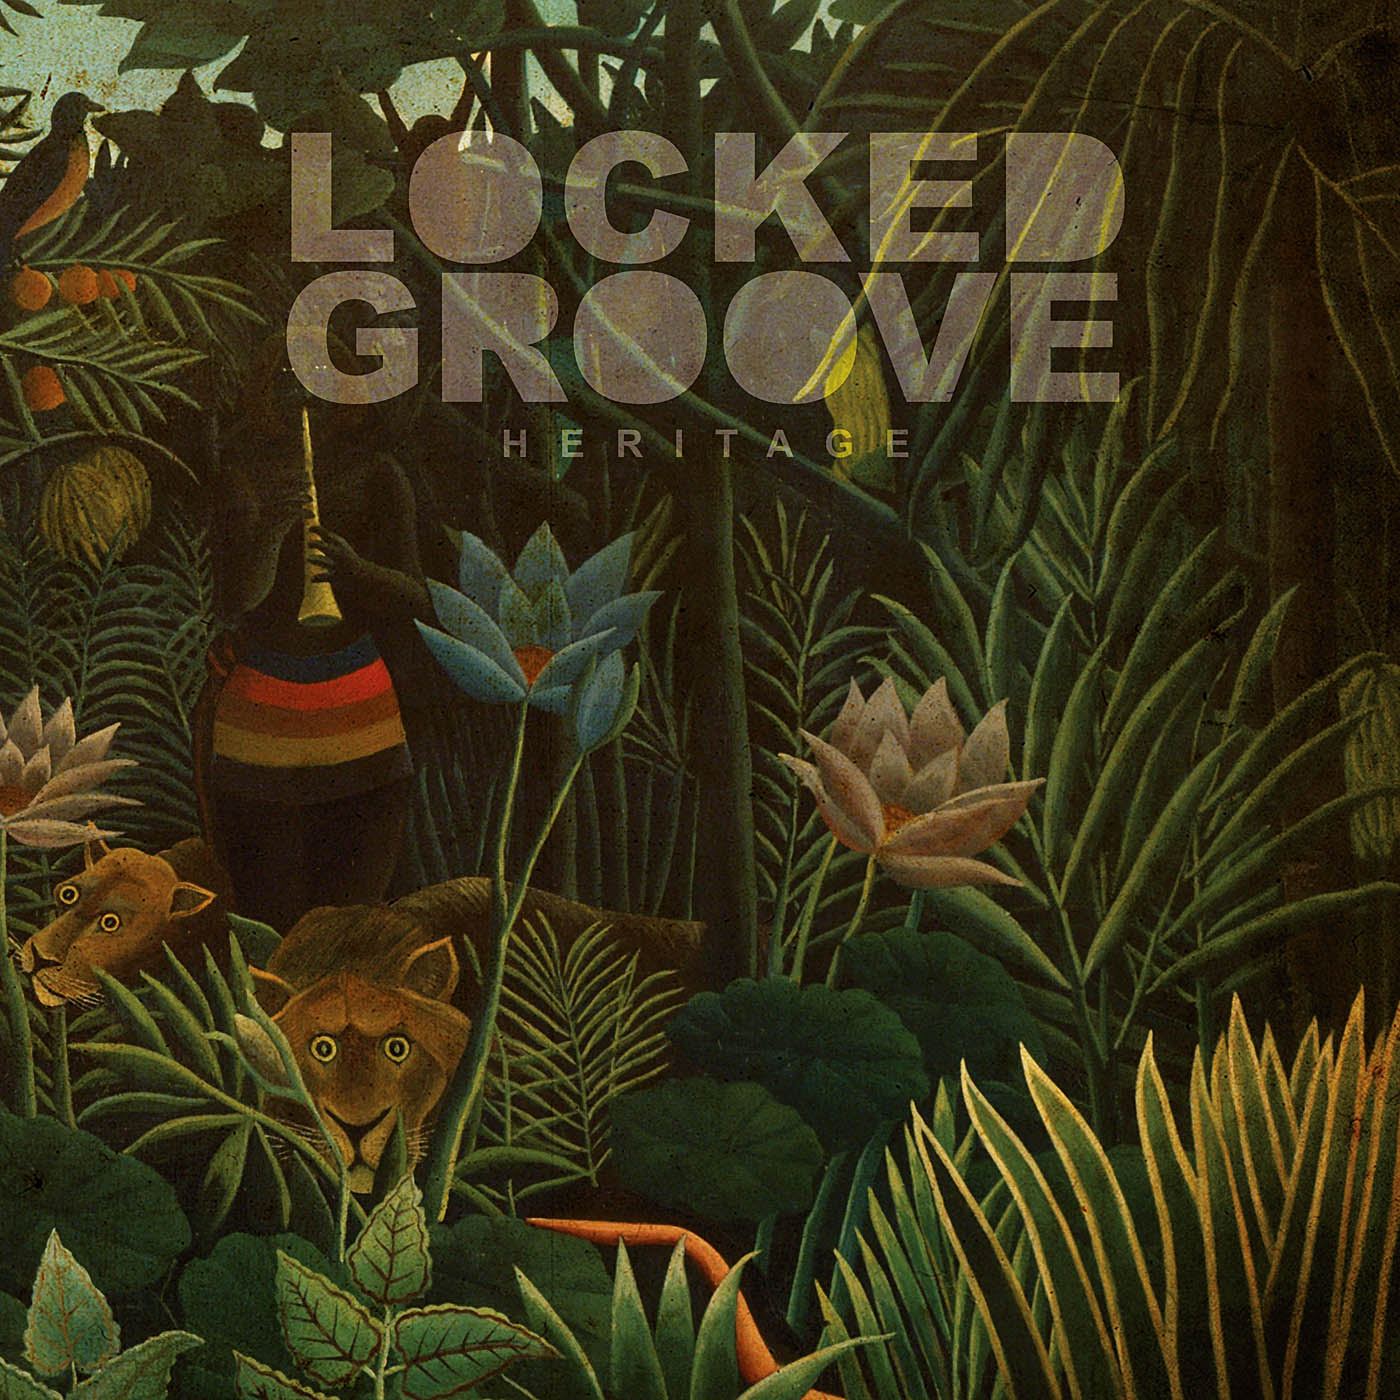 http://extramusicnew.files.wordpress.com/2013/02/locked-groove-heritage-ep-hotflush-recordings-hf038.jpg